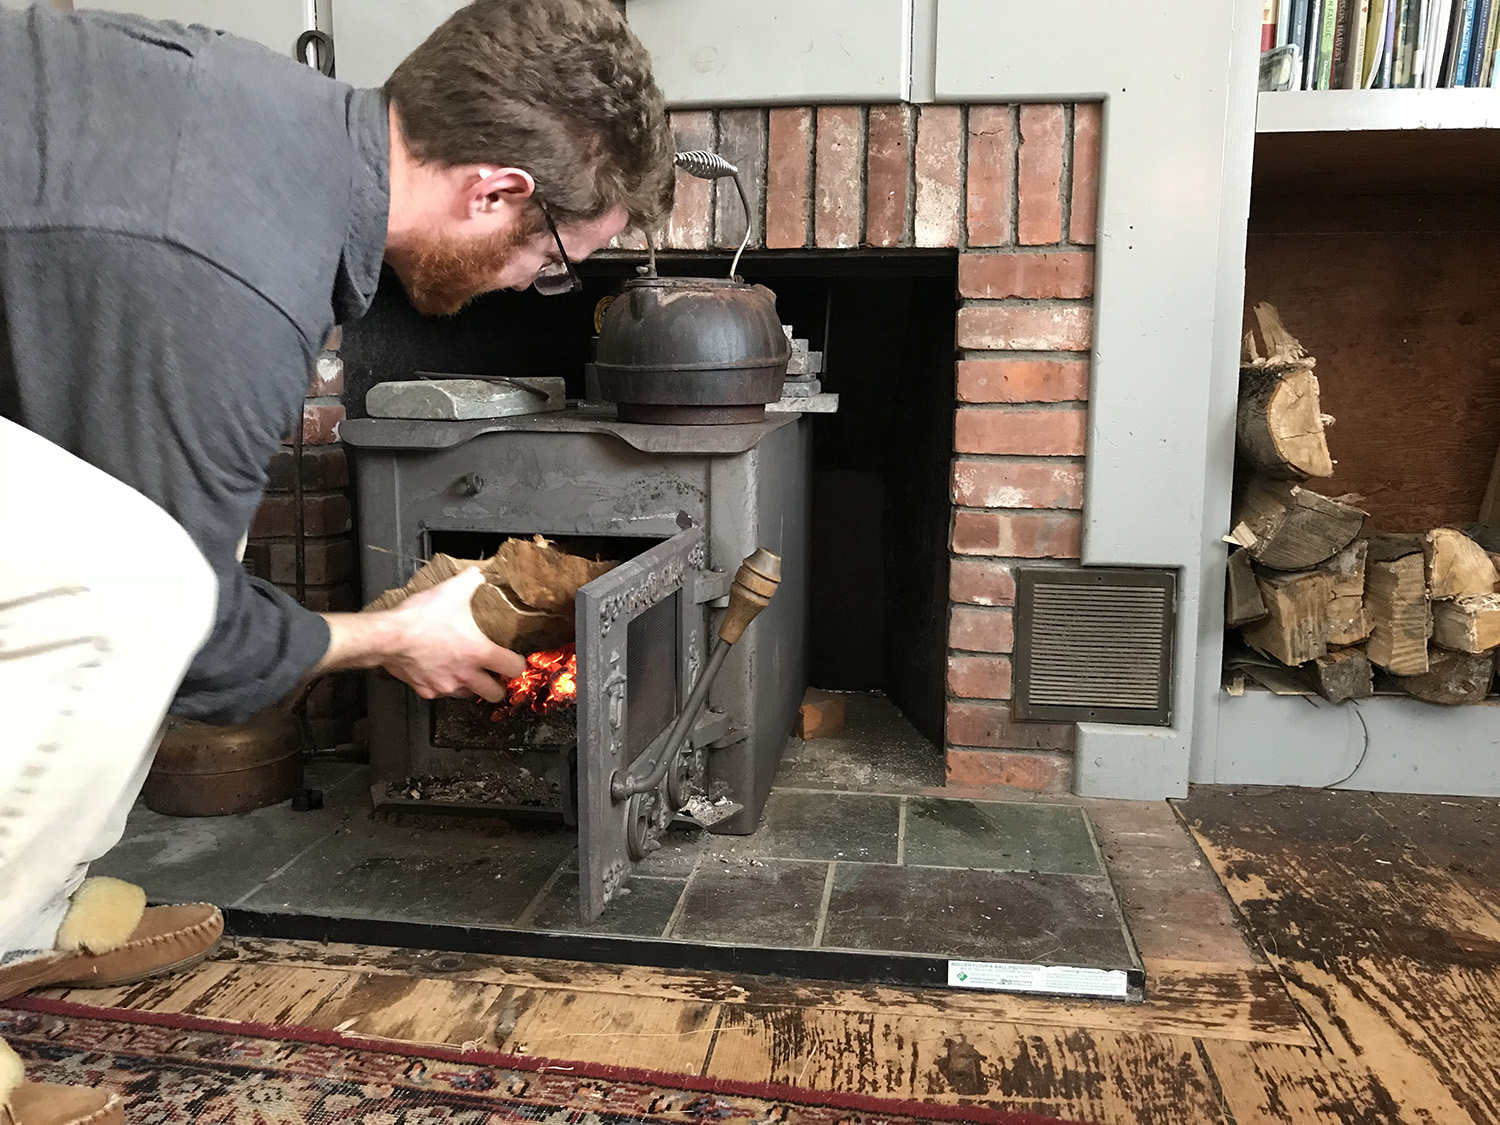 What Are The Pros And Cons Of Heating With Wood? | Vermont Public Radio